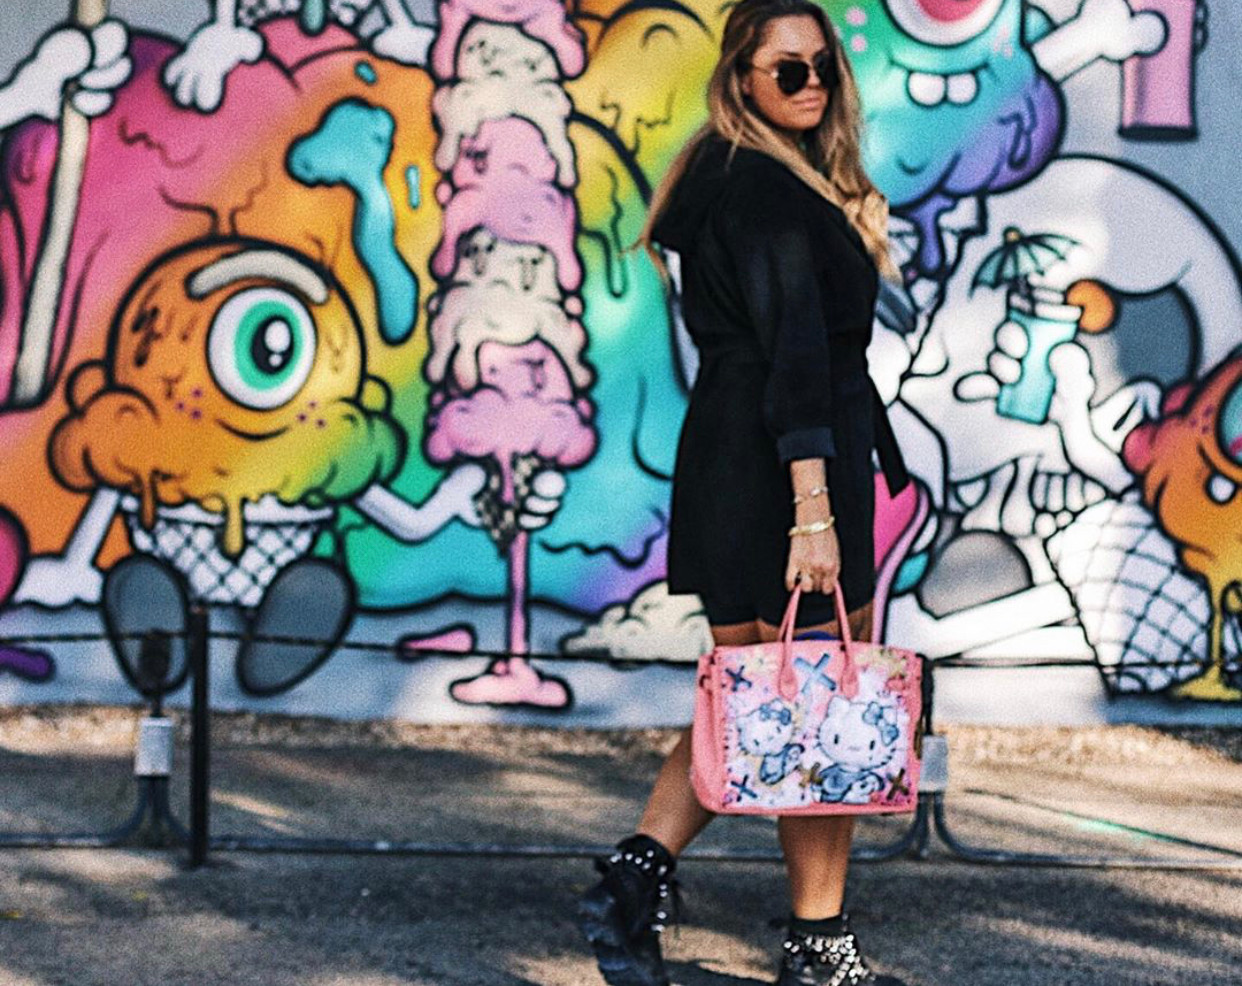 EvLinche with a customized bag